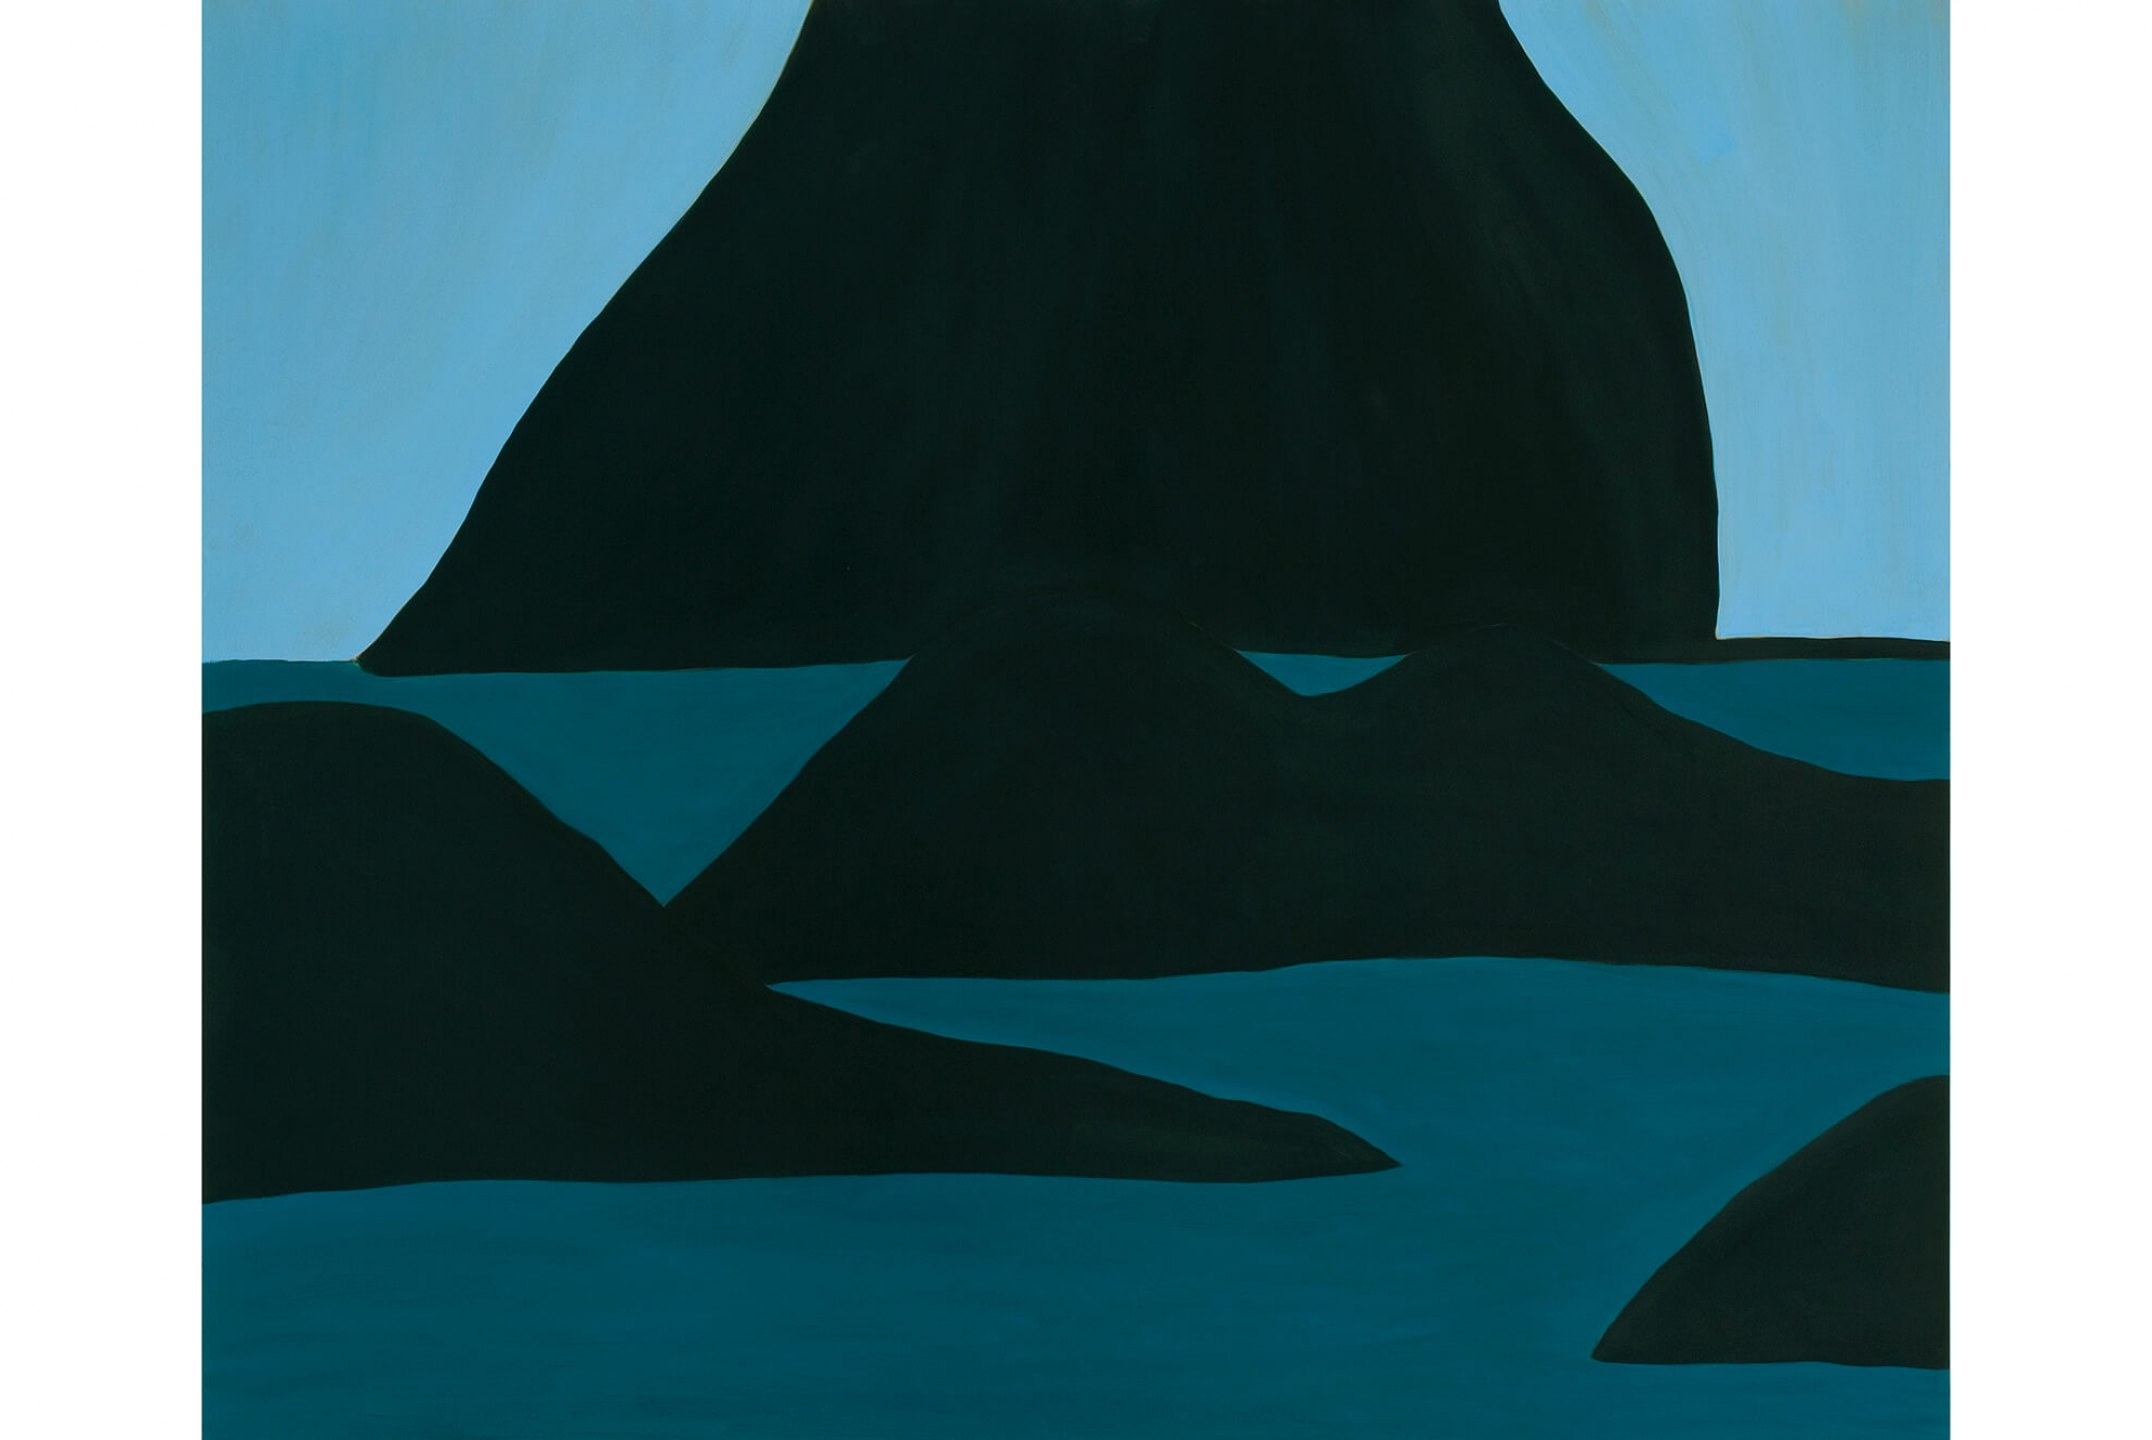 Patricia Leite, <em>Noronha com pedras</em>, 2006, oil on wood, 160 × 190 cm <br><br> - Mendes Wood DM